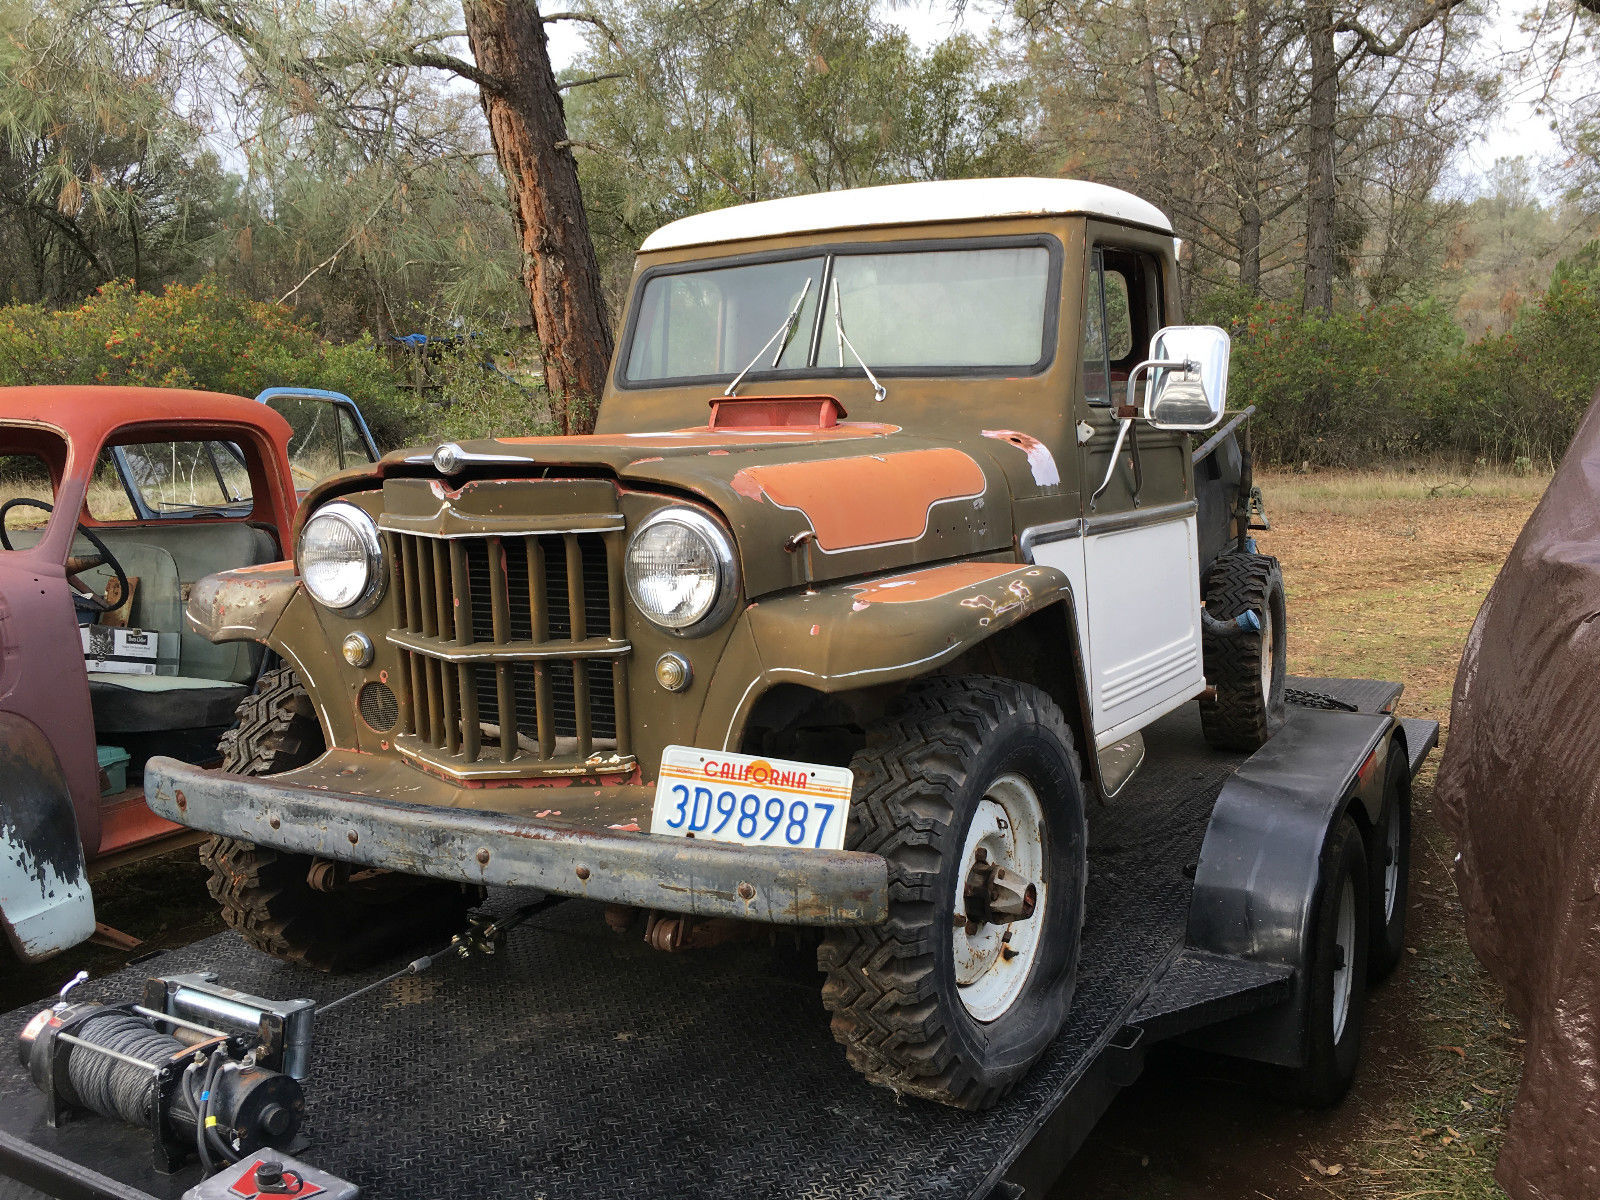 1962 Willys Pickup Truck for sale